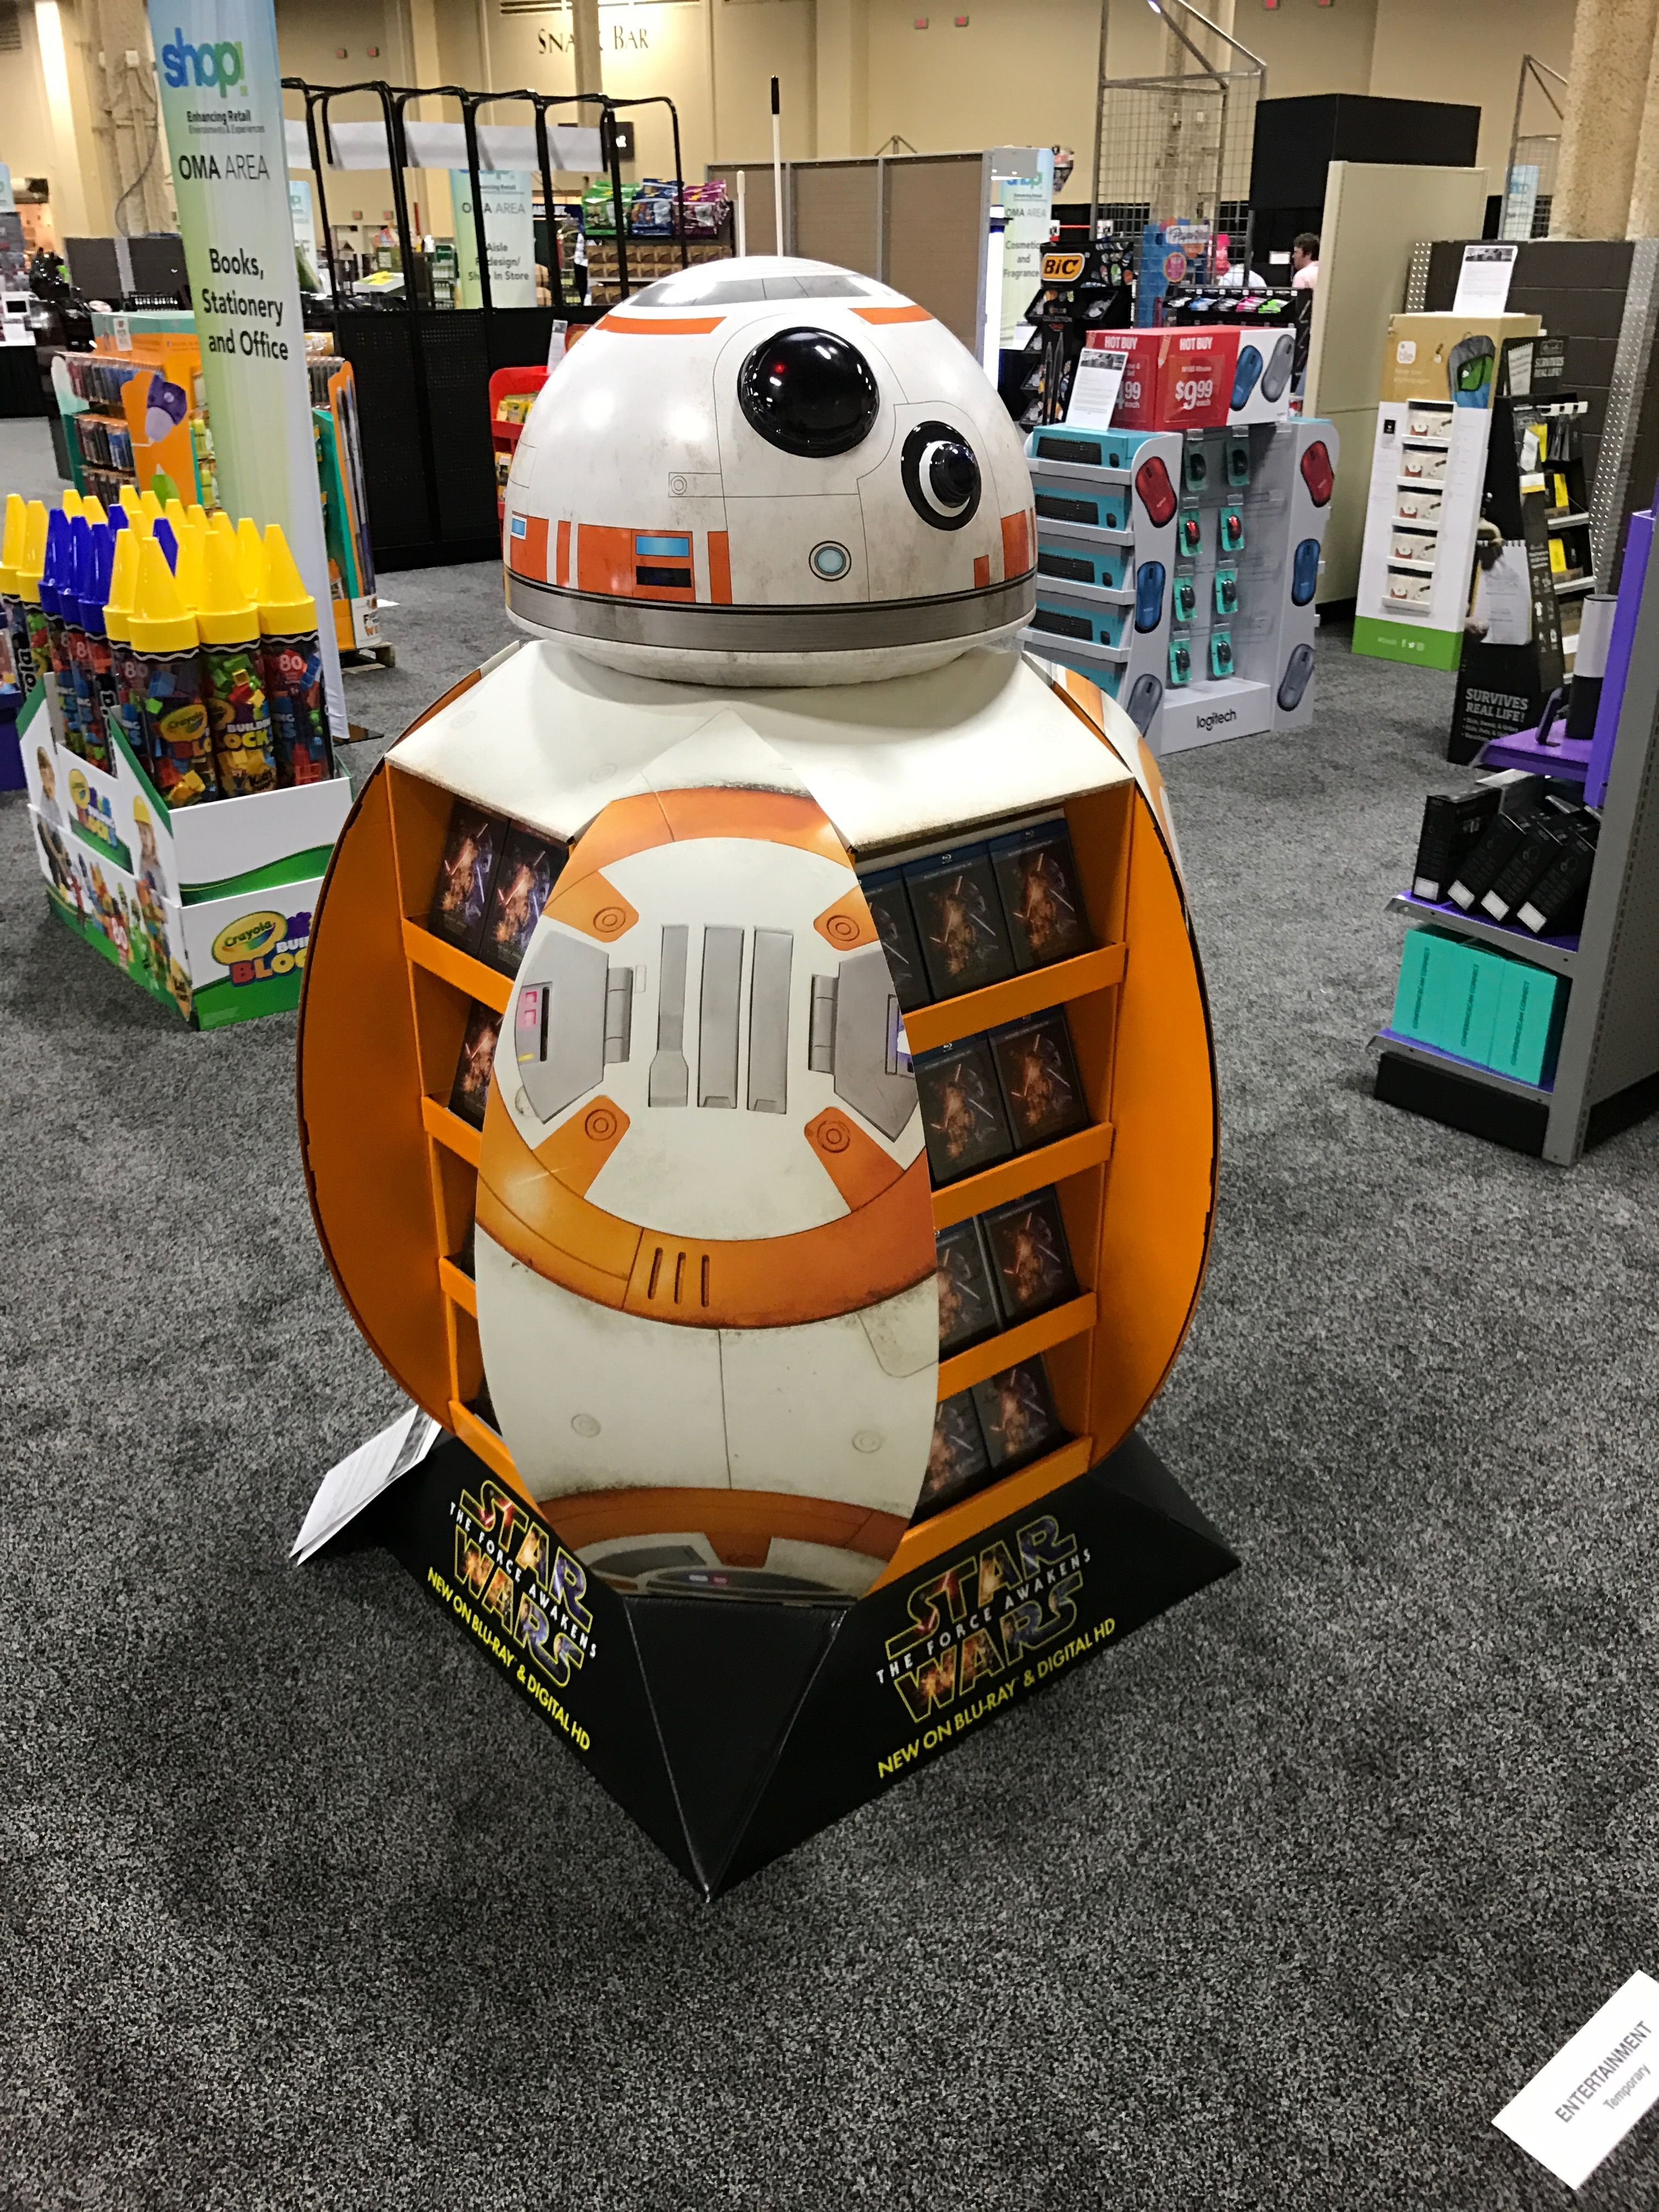 Looking To Purchase This Unit: Star Wars BB-8 Free Standing Unit